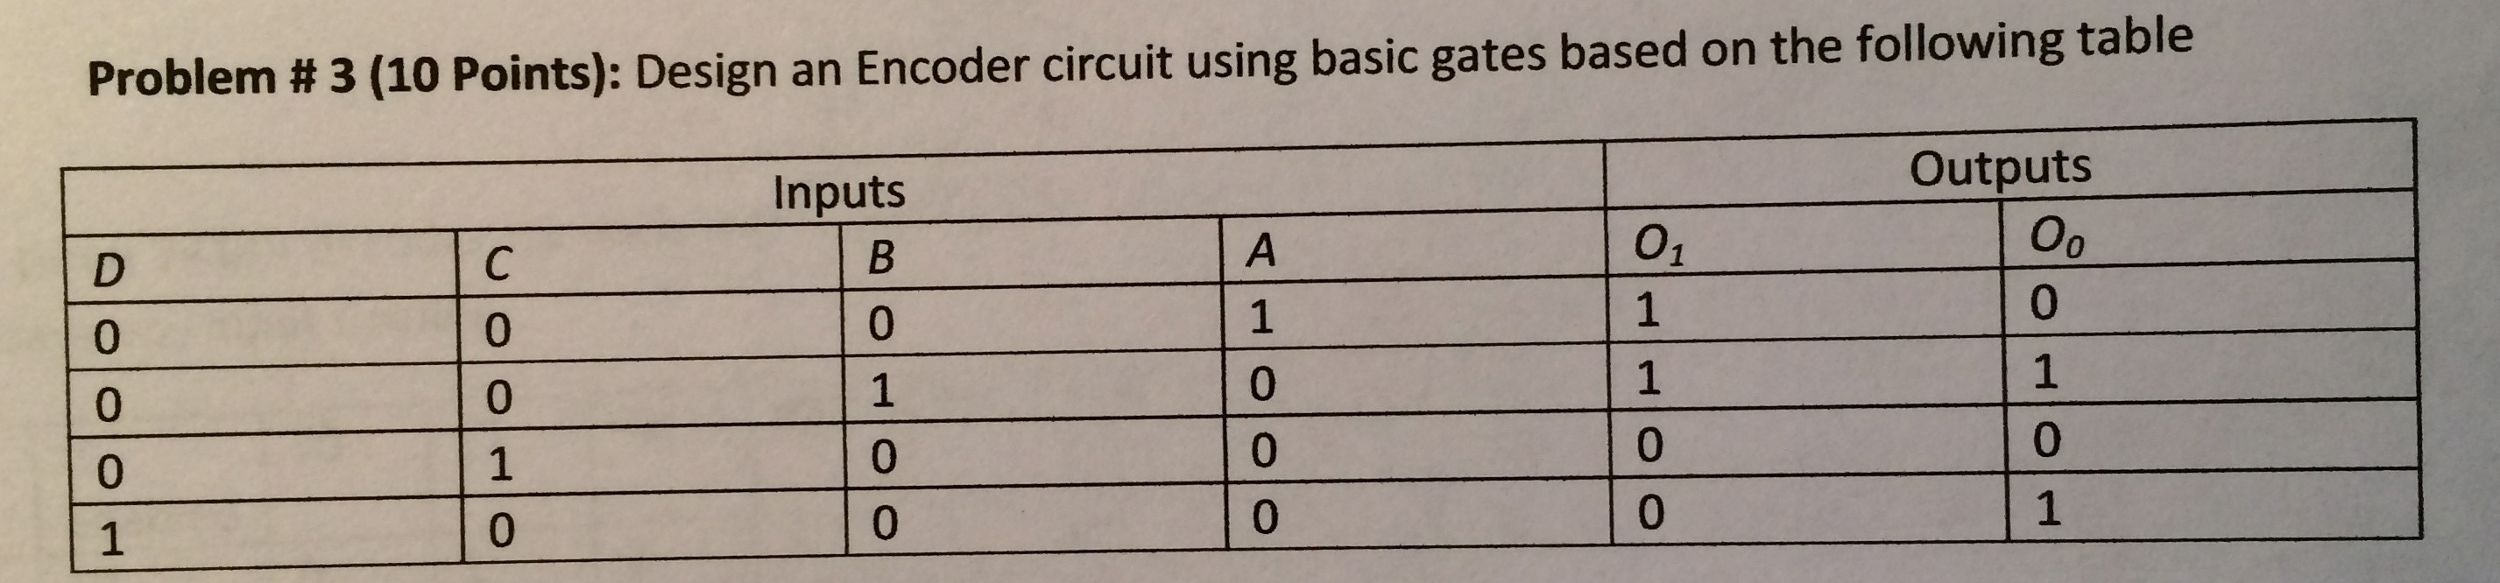 Design an Encoder circuit using basic gates based